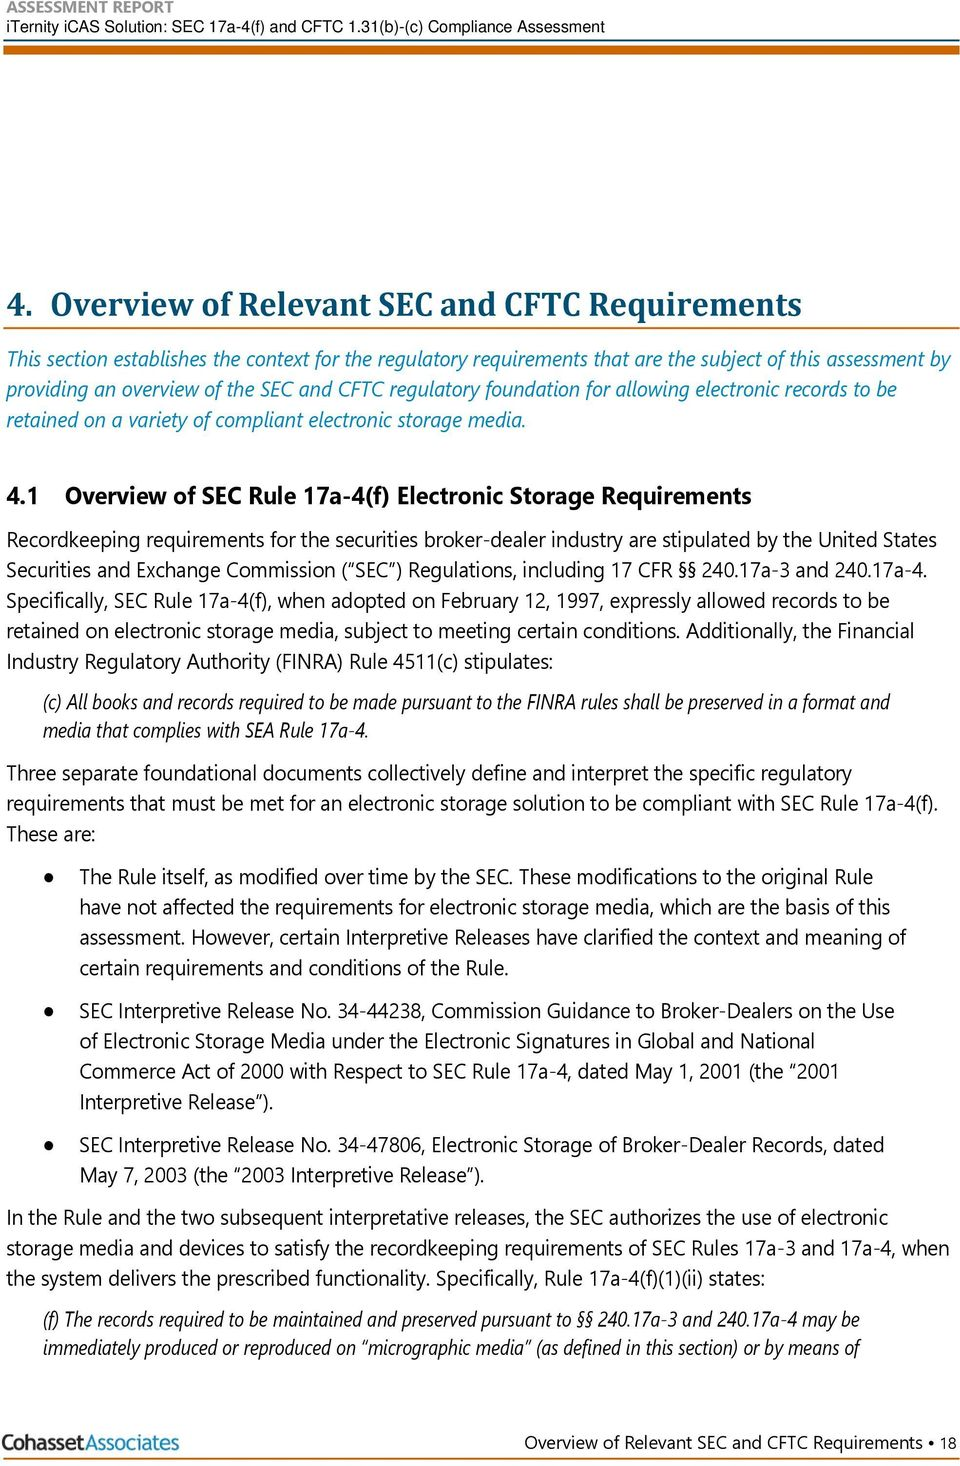 1 Overview of SEC Rule 17a-4(f) Electronic Storage Requirements Recordkeeping requirements for the securities broker-dealer industry are stipulated by the United States Securities and Exchange